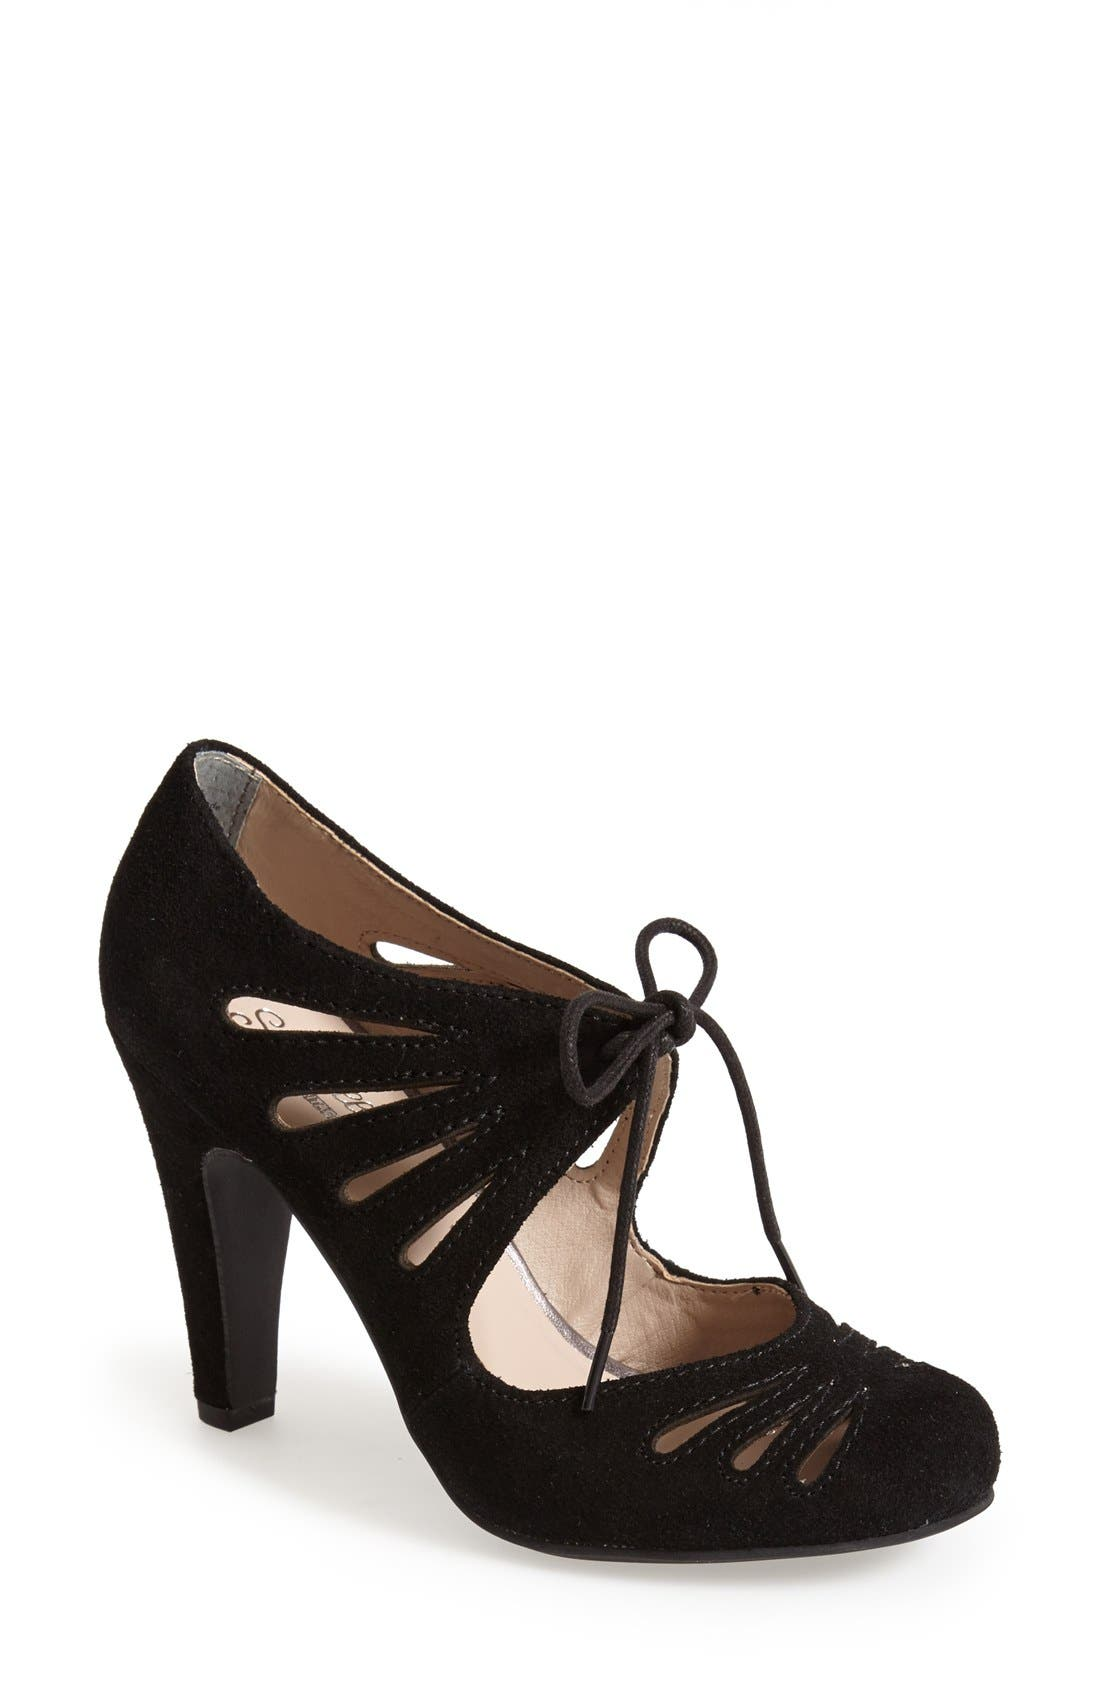 Alternate Image 1 Selected - Seychelles 'Brave' Suede Pump (Women)